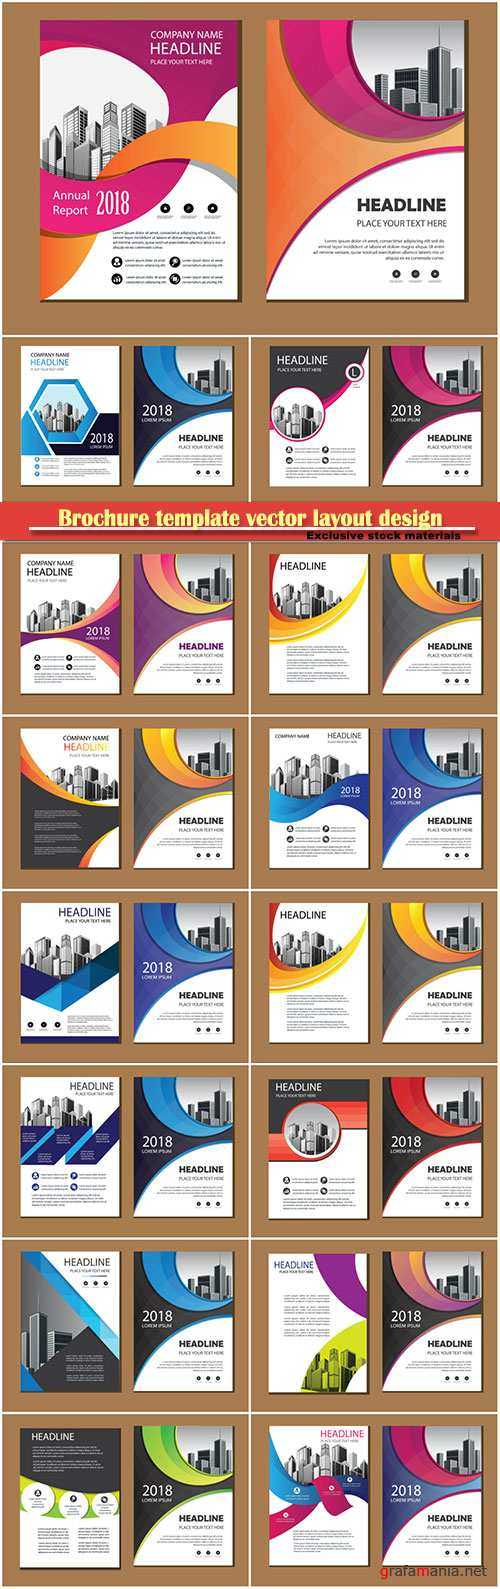 Brochure template vector layout design, corporate business annual report, magazine, flyer mockup # 149